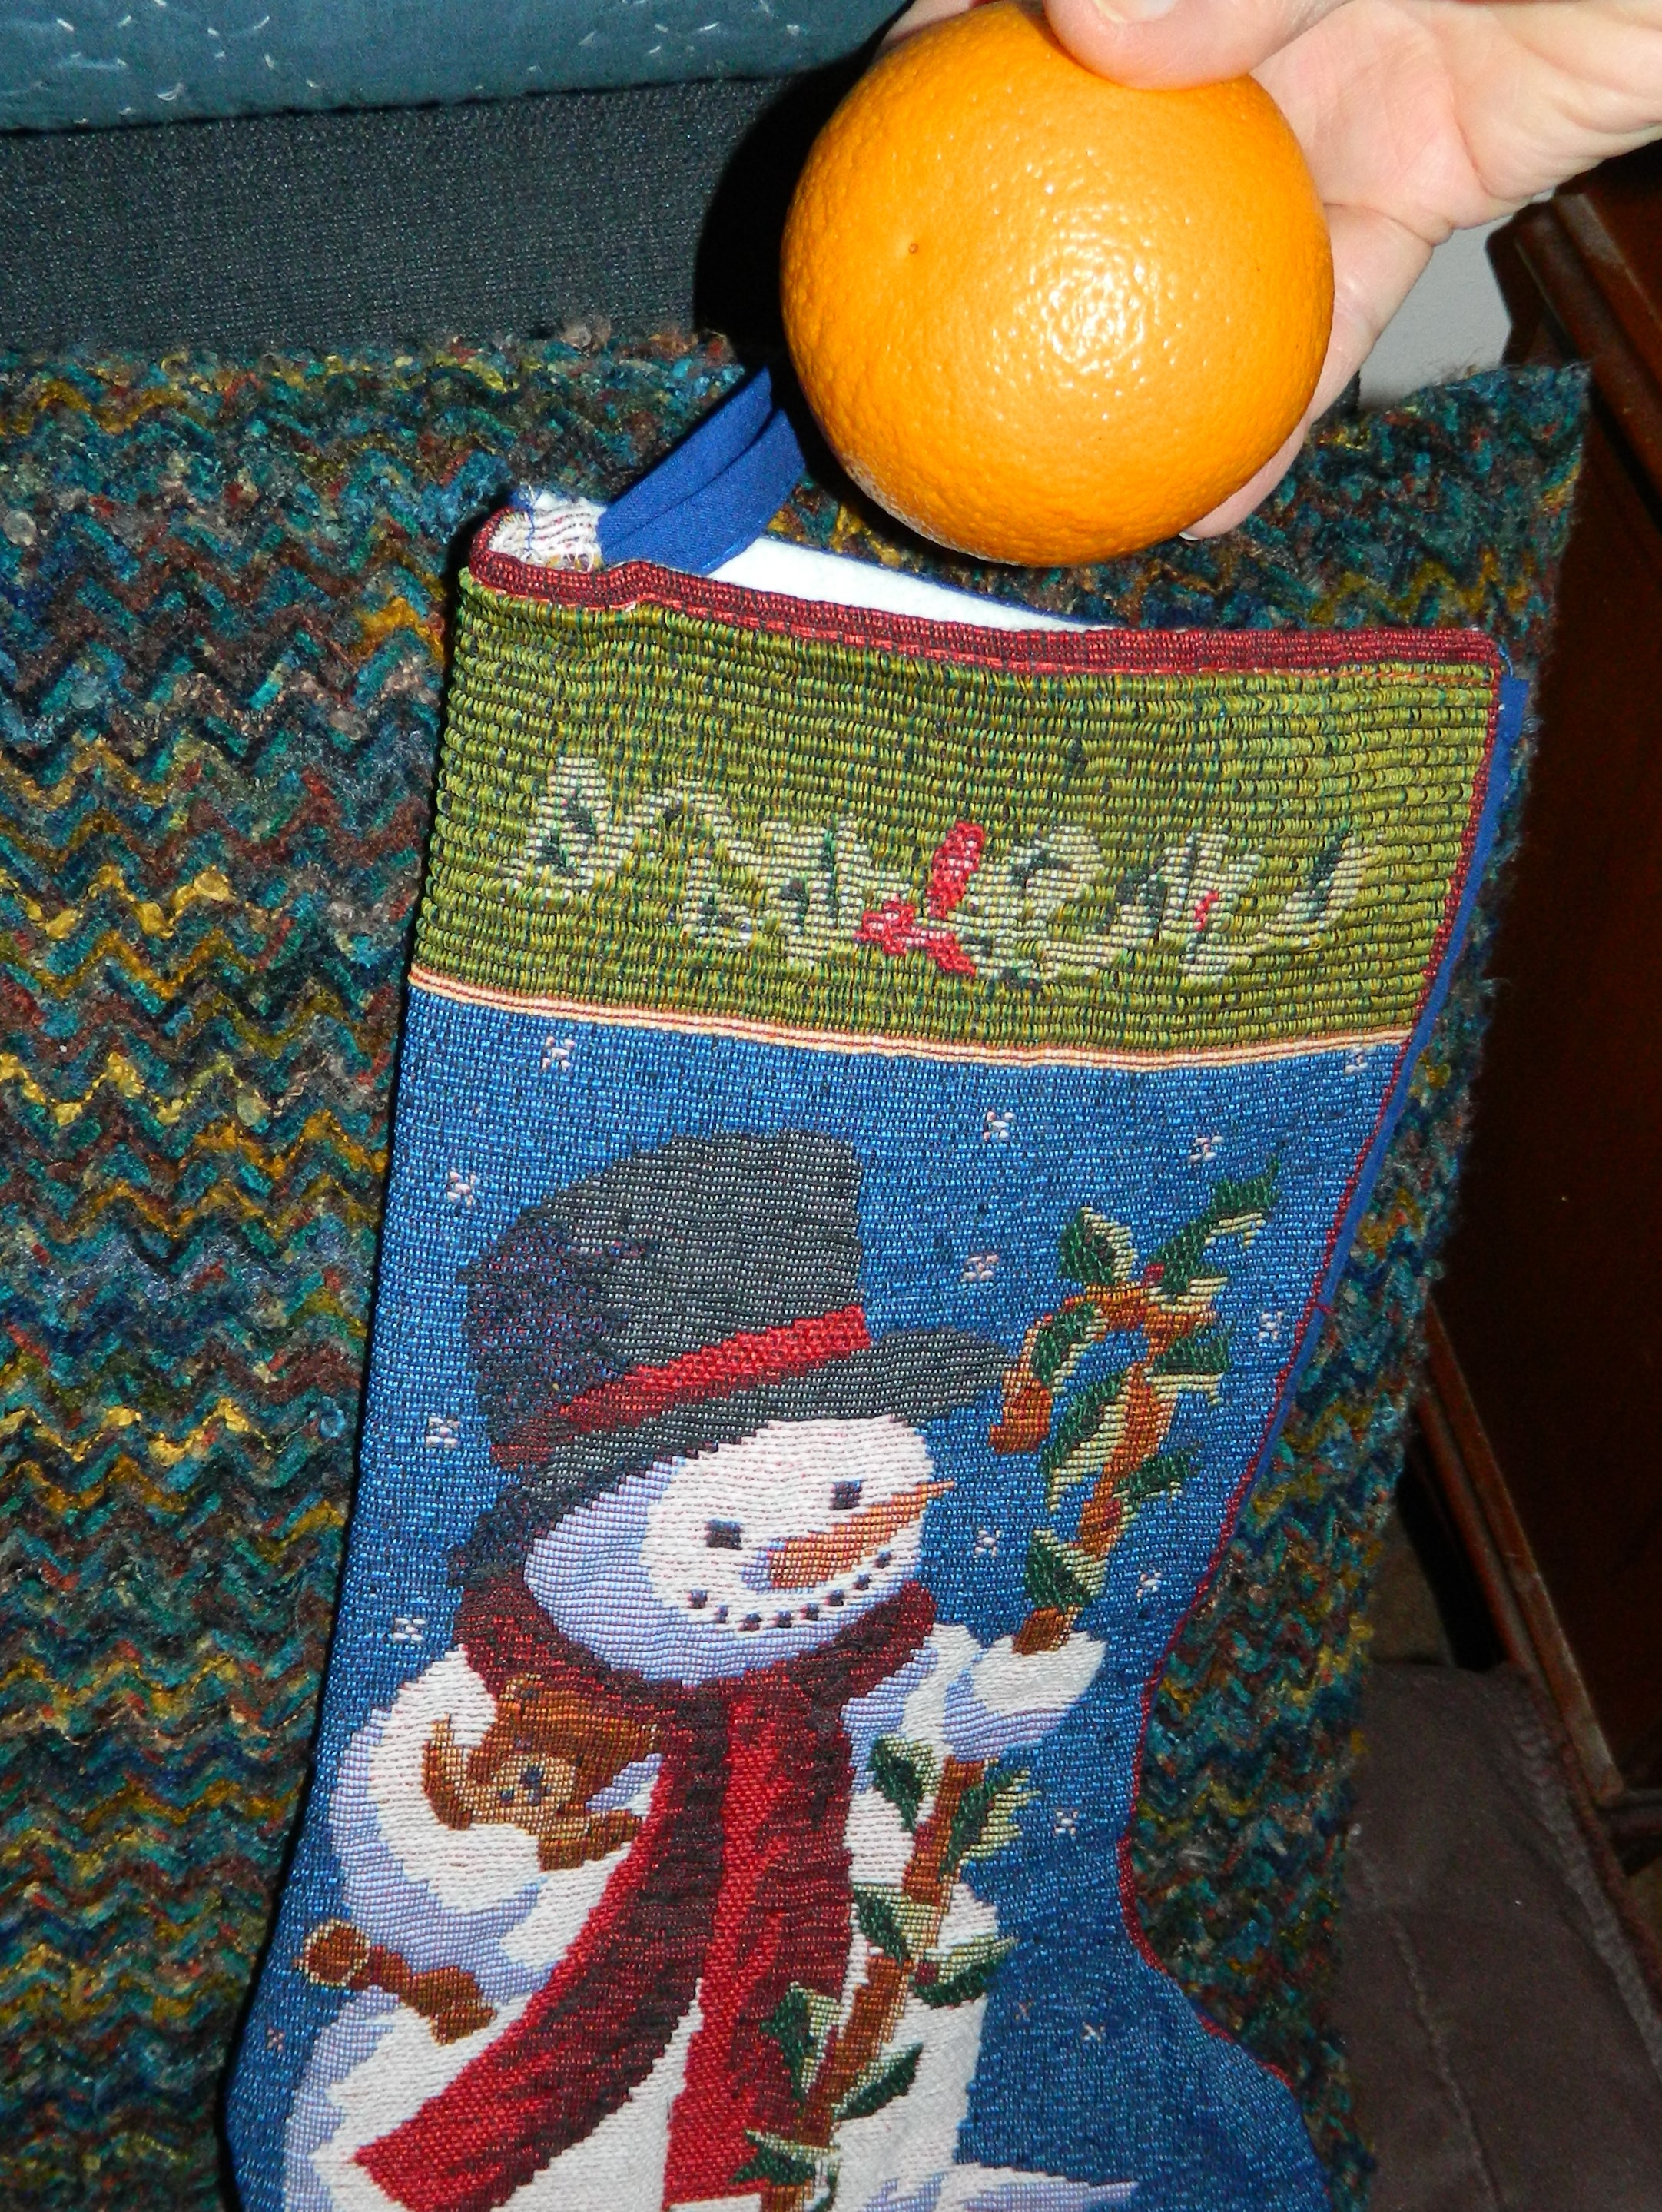 Christmas baking oranges in stockings newsandviewsjb for Baking oranges for christmas decoration